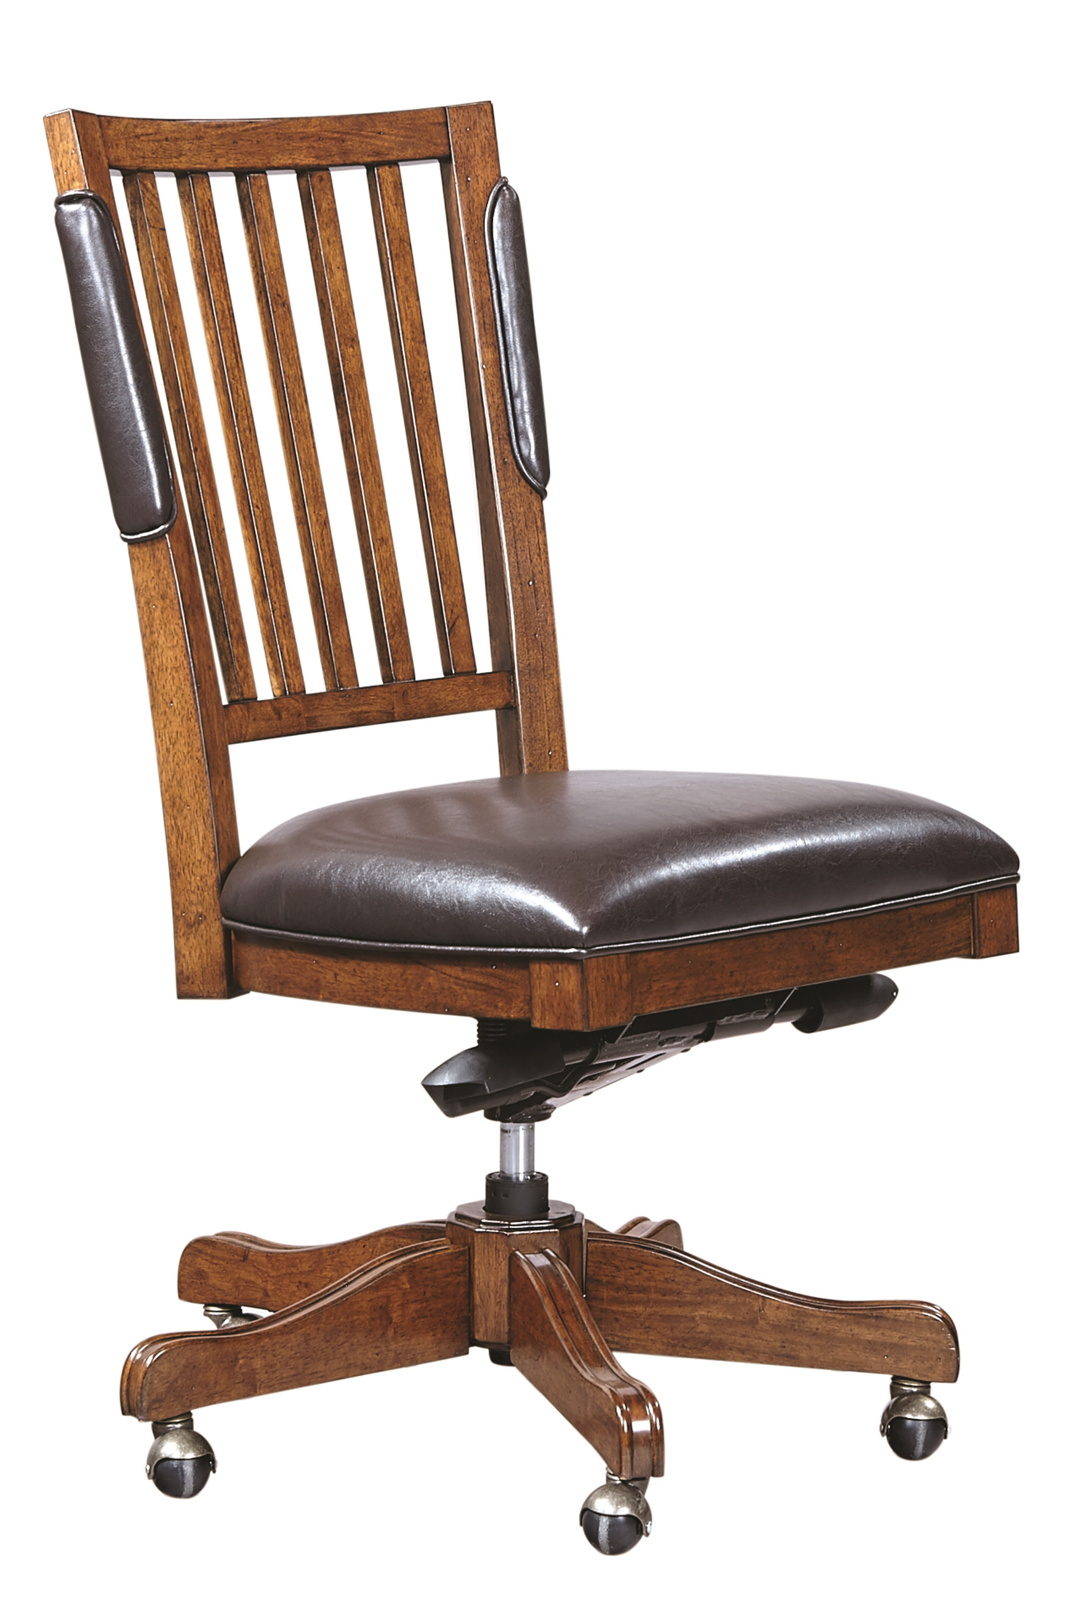 Cherry Chairs Aspenhome Hawthorne Executive Office Chair In Brown Cherry